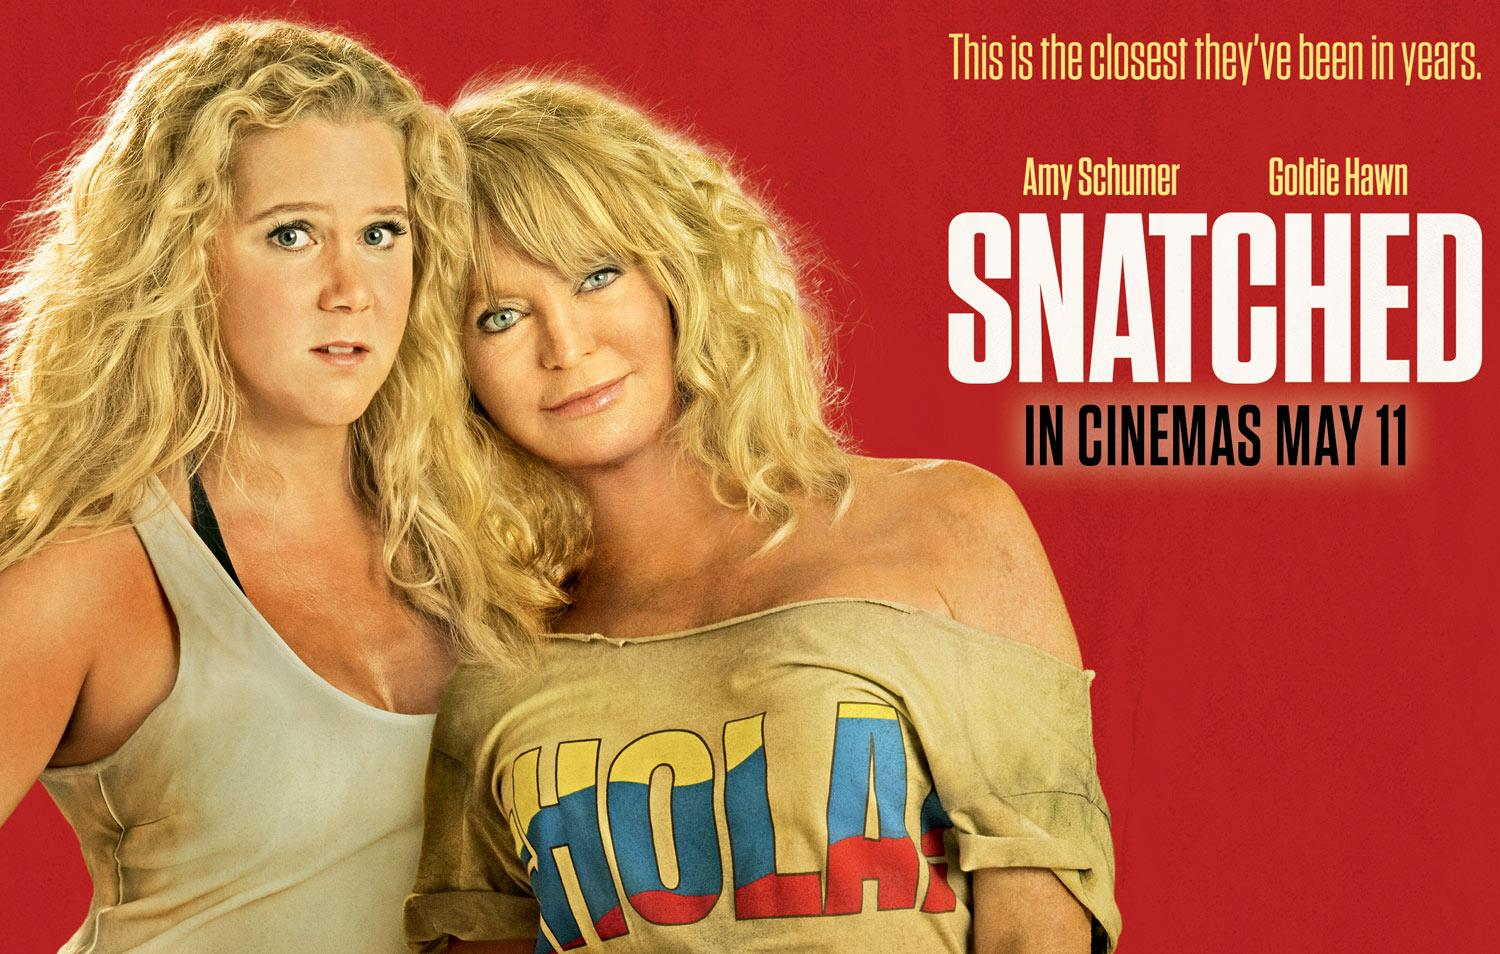 Snatched (film)